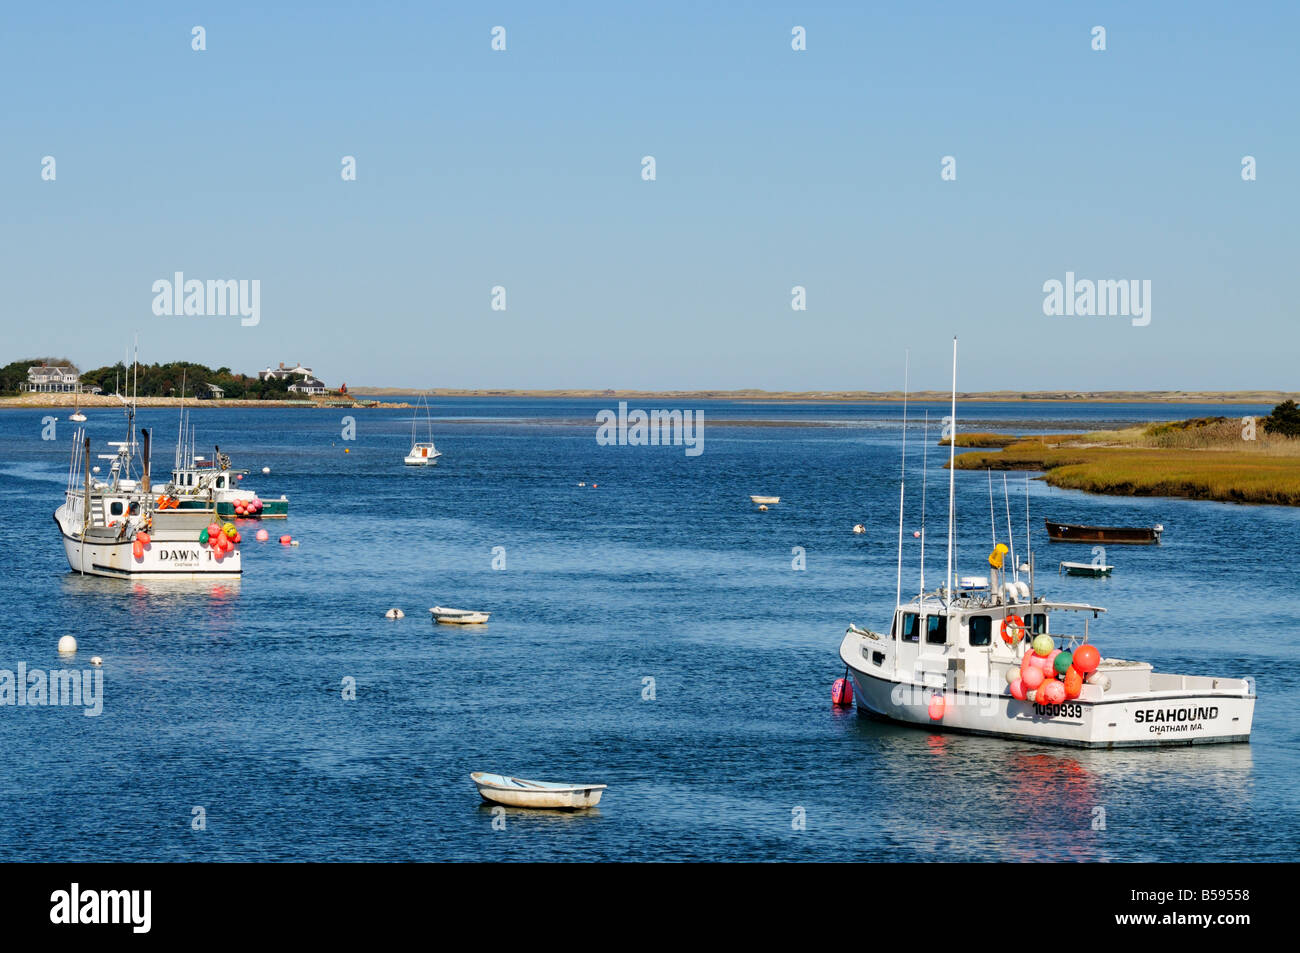 Two 2 Commercial Fishing Boats Moored In Chatham Harbor